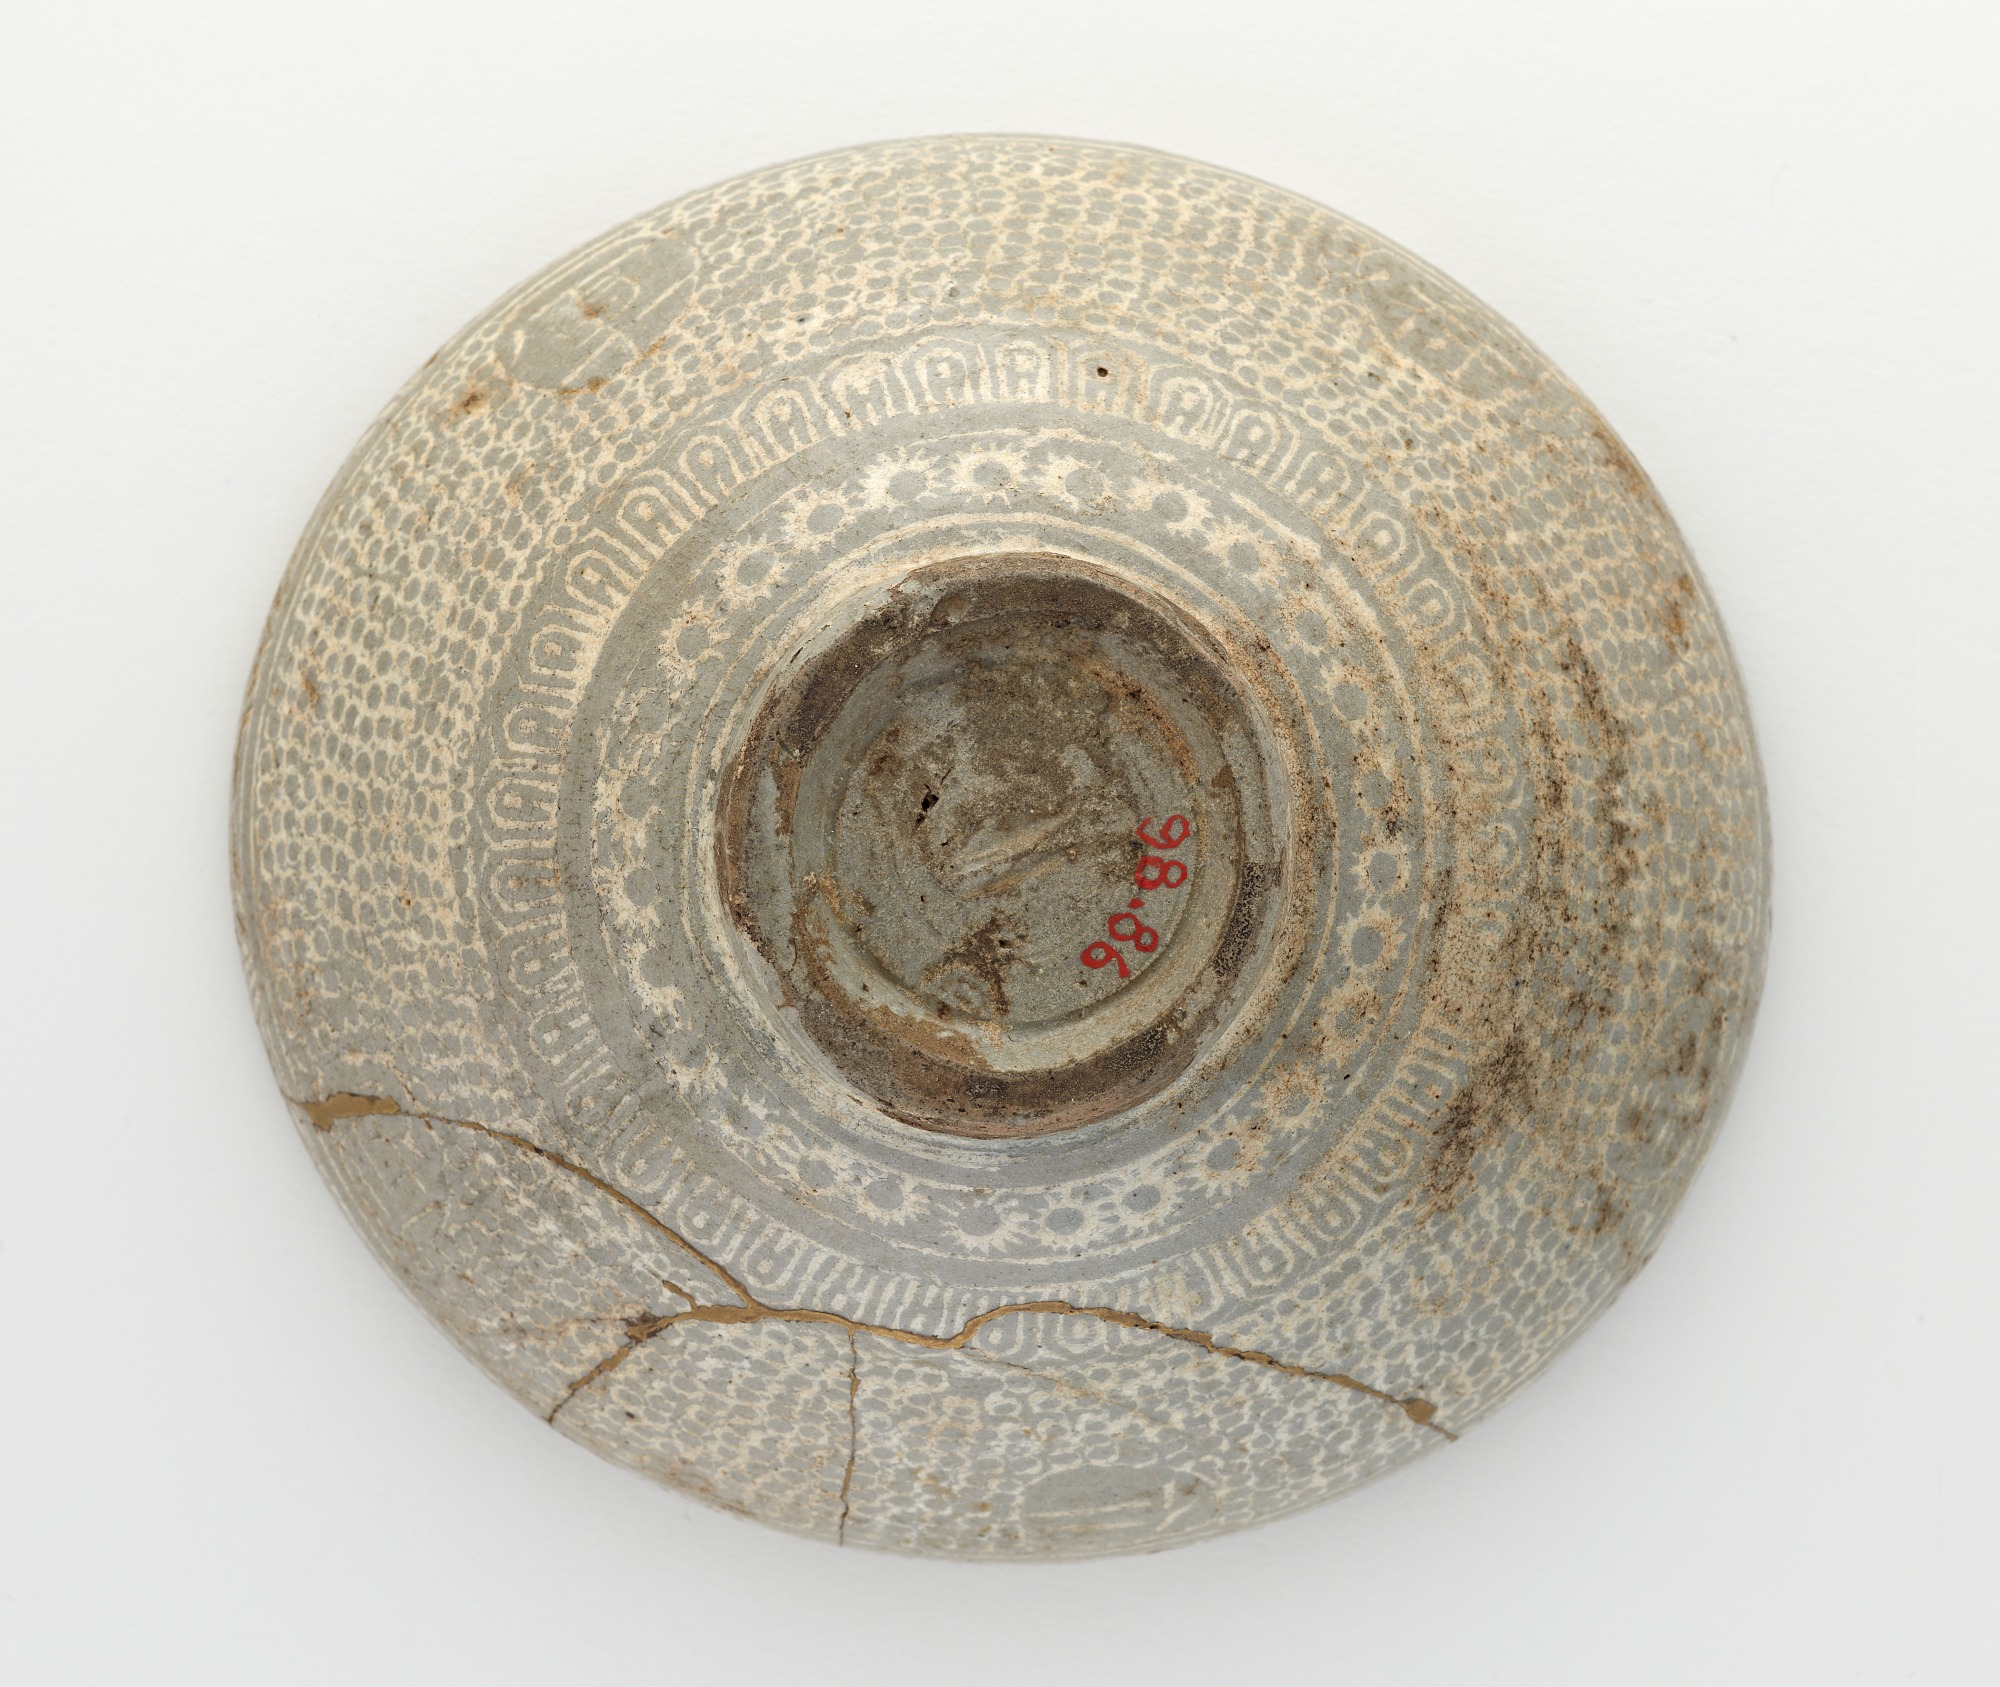 base: Bowl with inlaid inscription